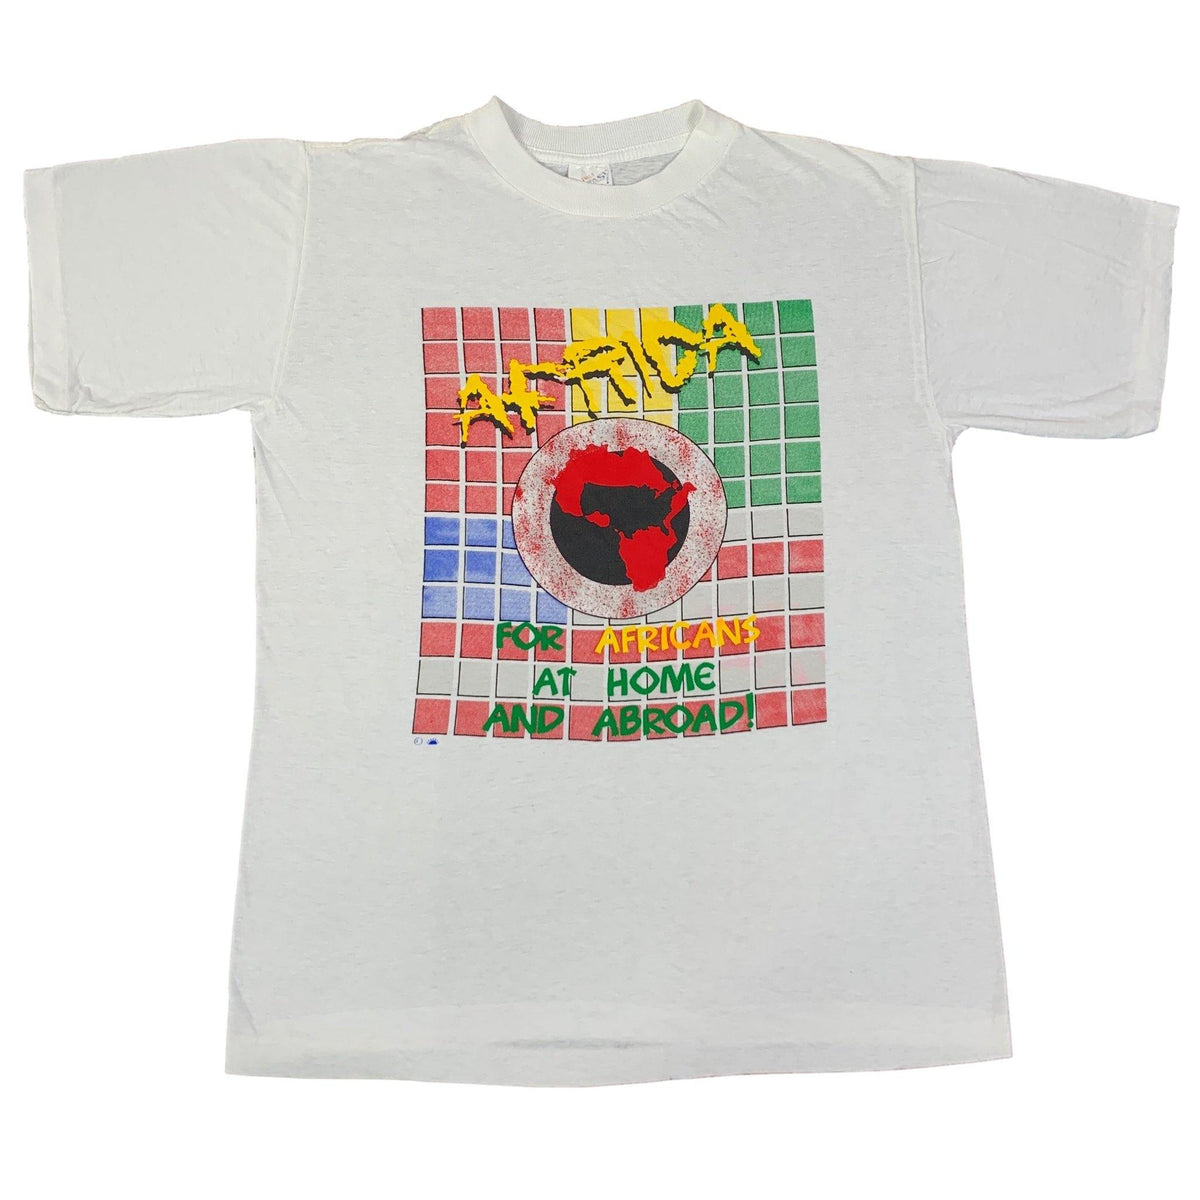 "Vintage Africa ""Home And Abroad"" T-Shirt - jointcustodydc"